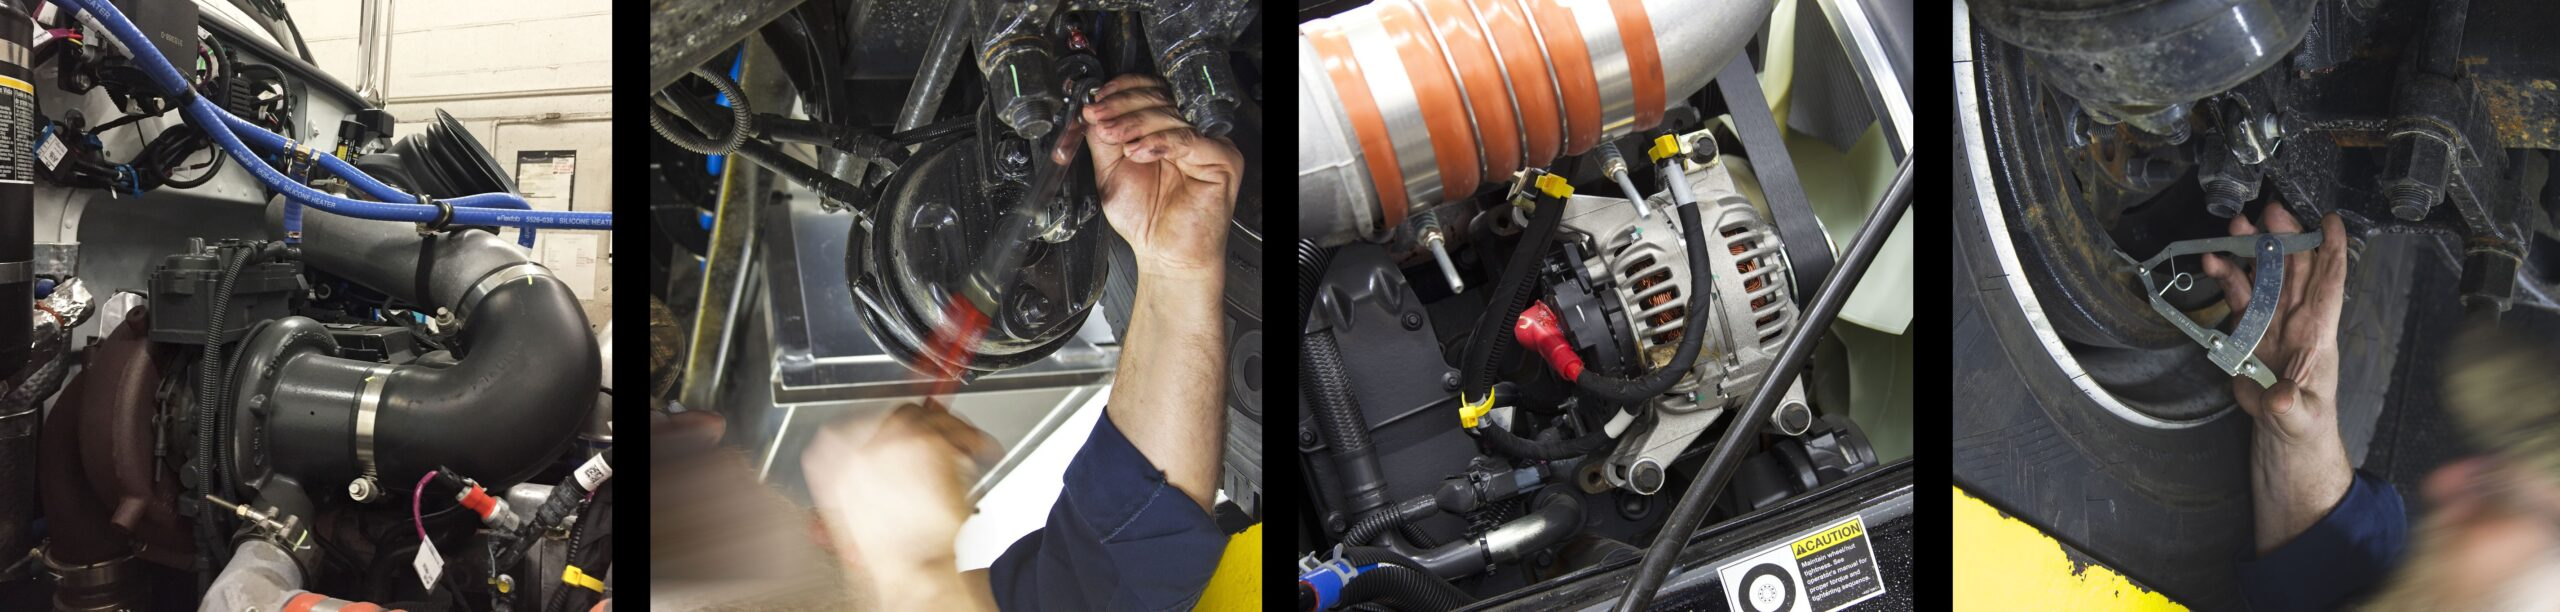 Fleet Maintenance Service & Repair